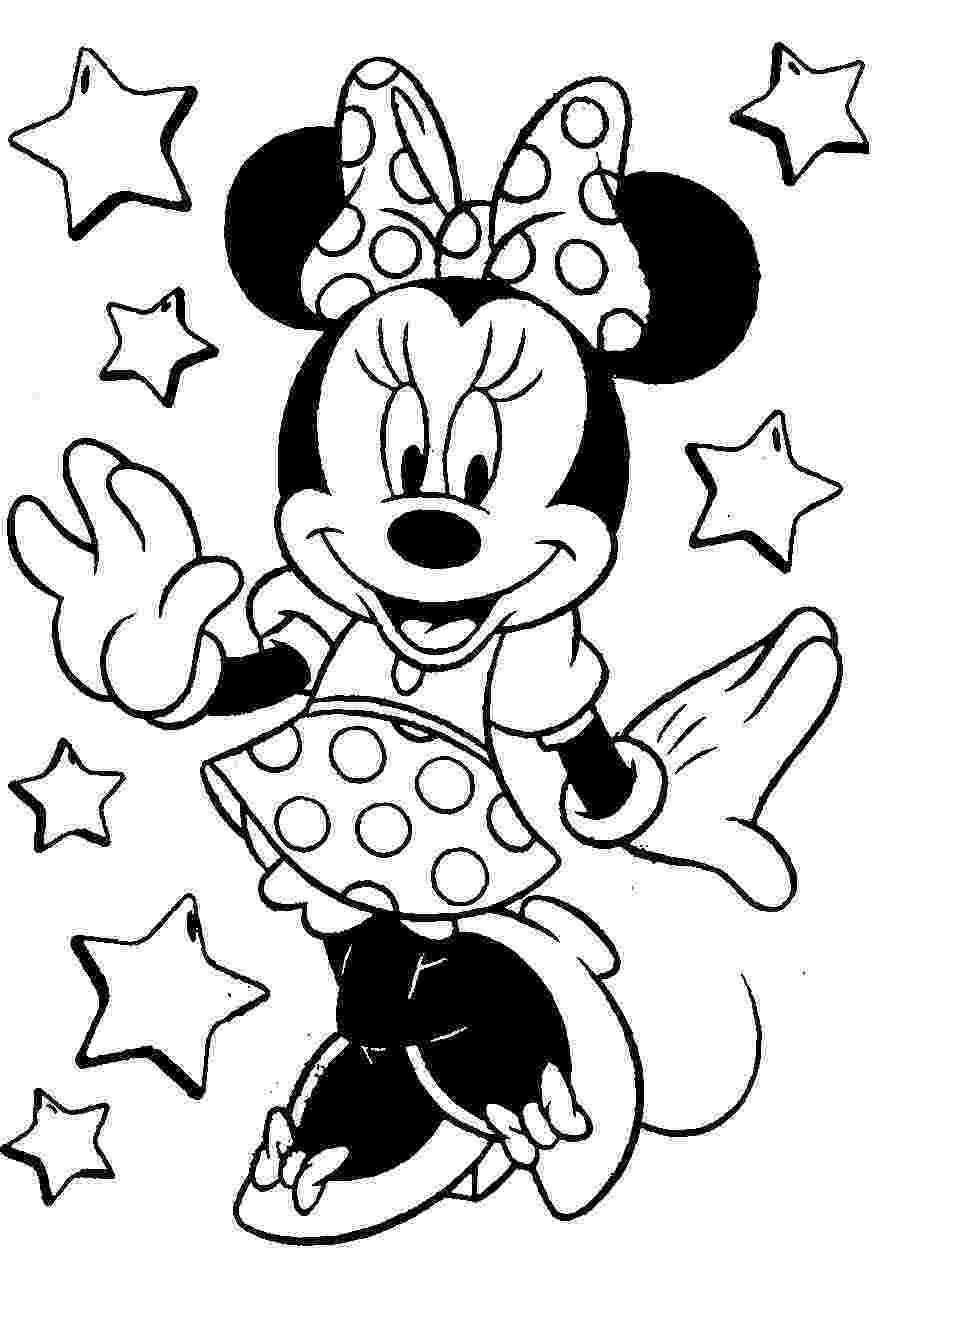 colouring pages of mickey mouse and minnie coloring pictures of minnie mouse google search and pages colouring mouse mickey minnie of